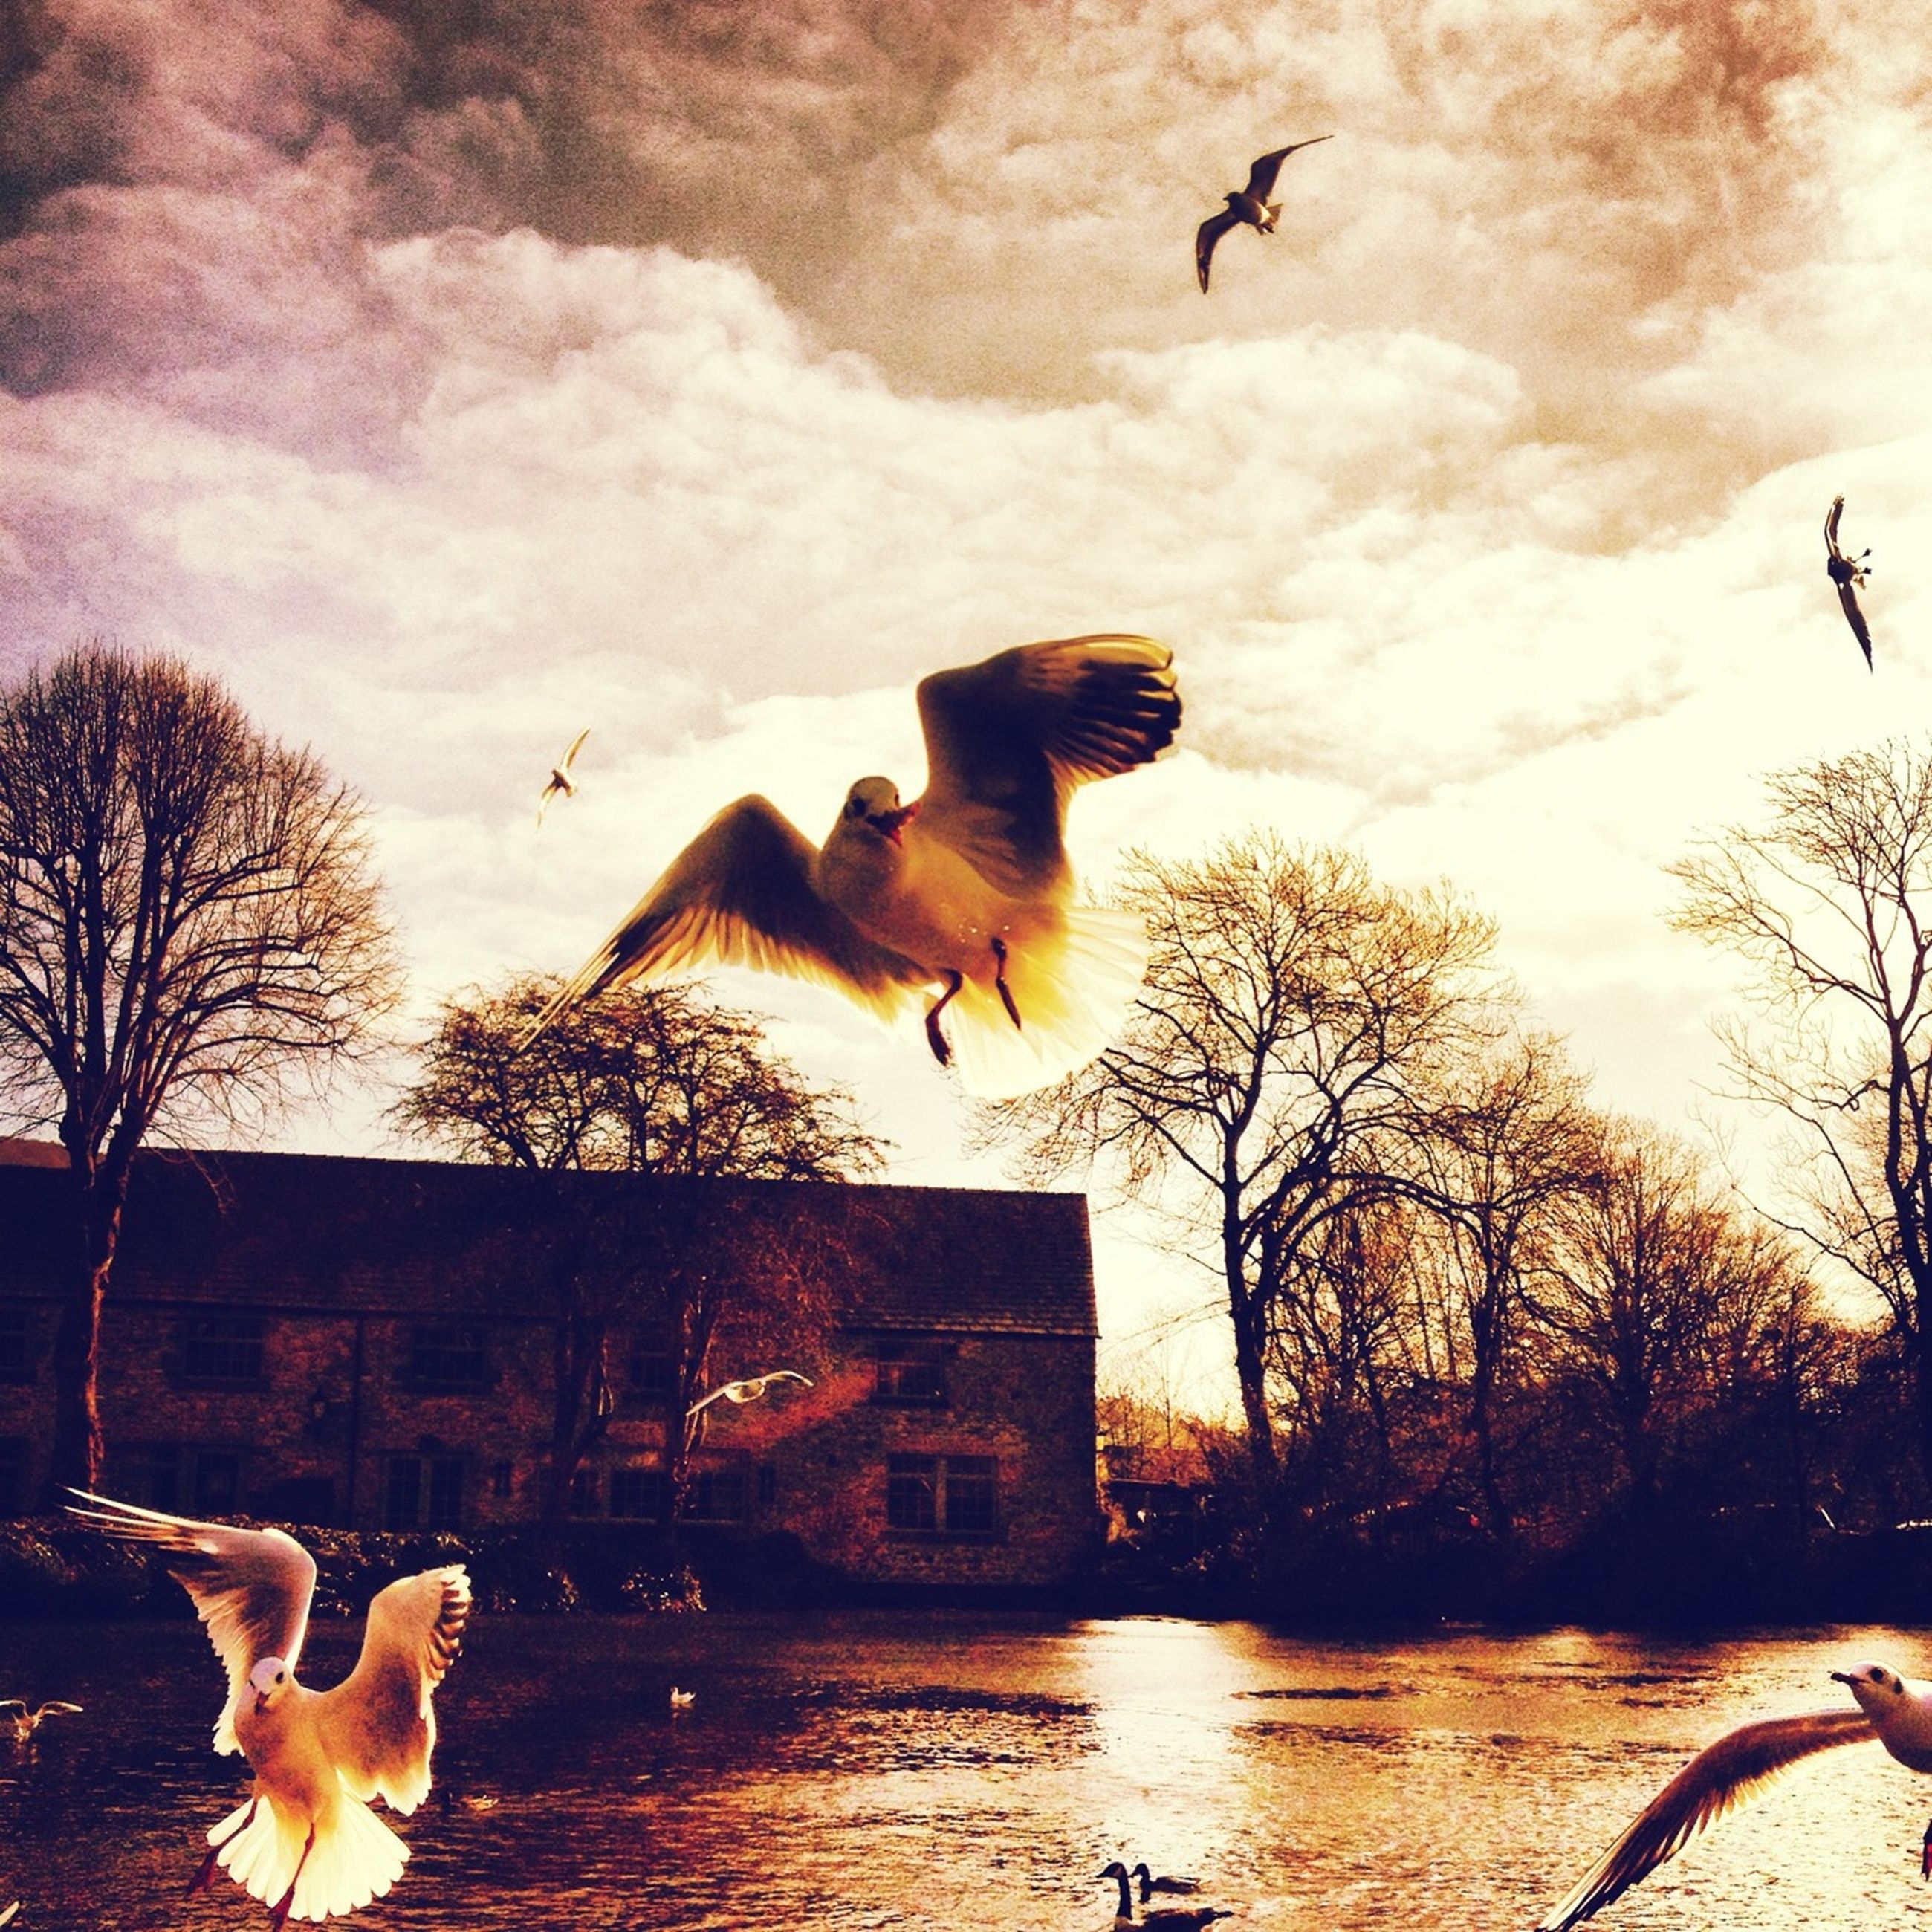 bird, animals in the wild, animal themes, wildlife, flying, flock of birds, spread wings, sky, building exterior, medium group of animals, mid-air, seagull, built structure, architecture, tree, bare tree, silhouette, nature, water